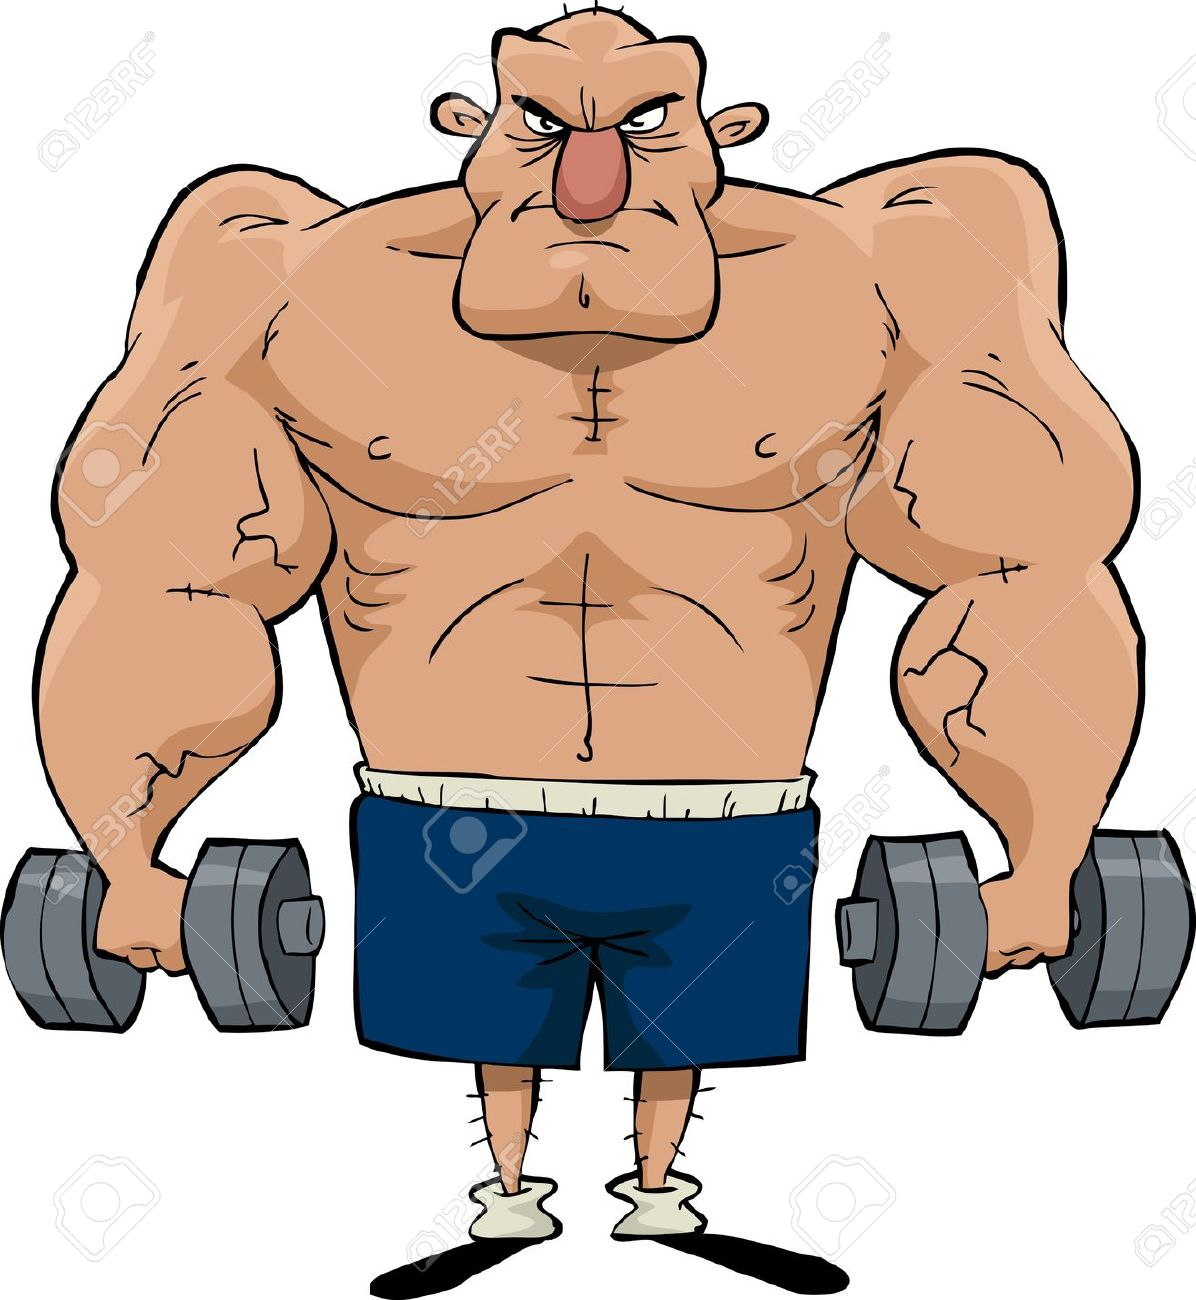 Muscle Man Clipart | Free download best Muscle Man Clipart on ... clip art freeuse library